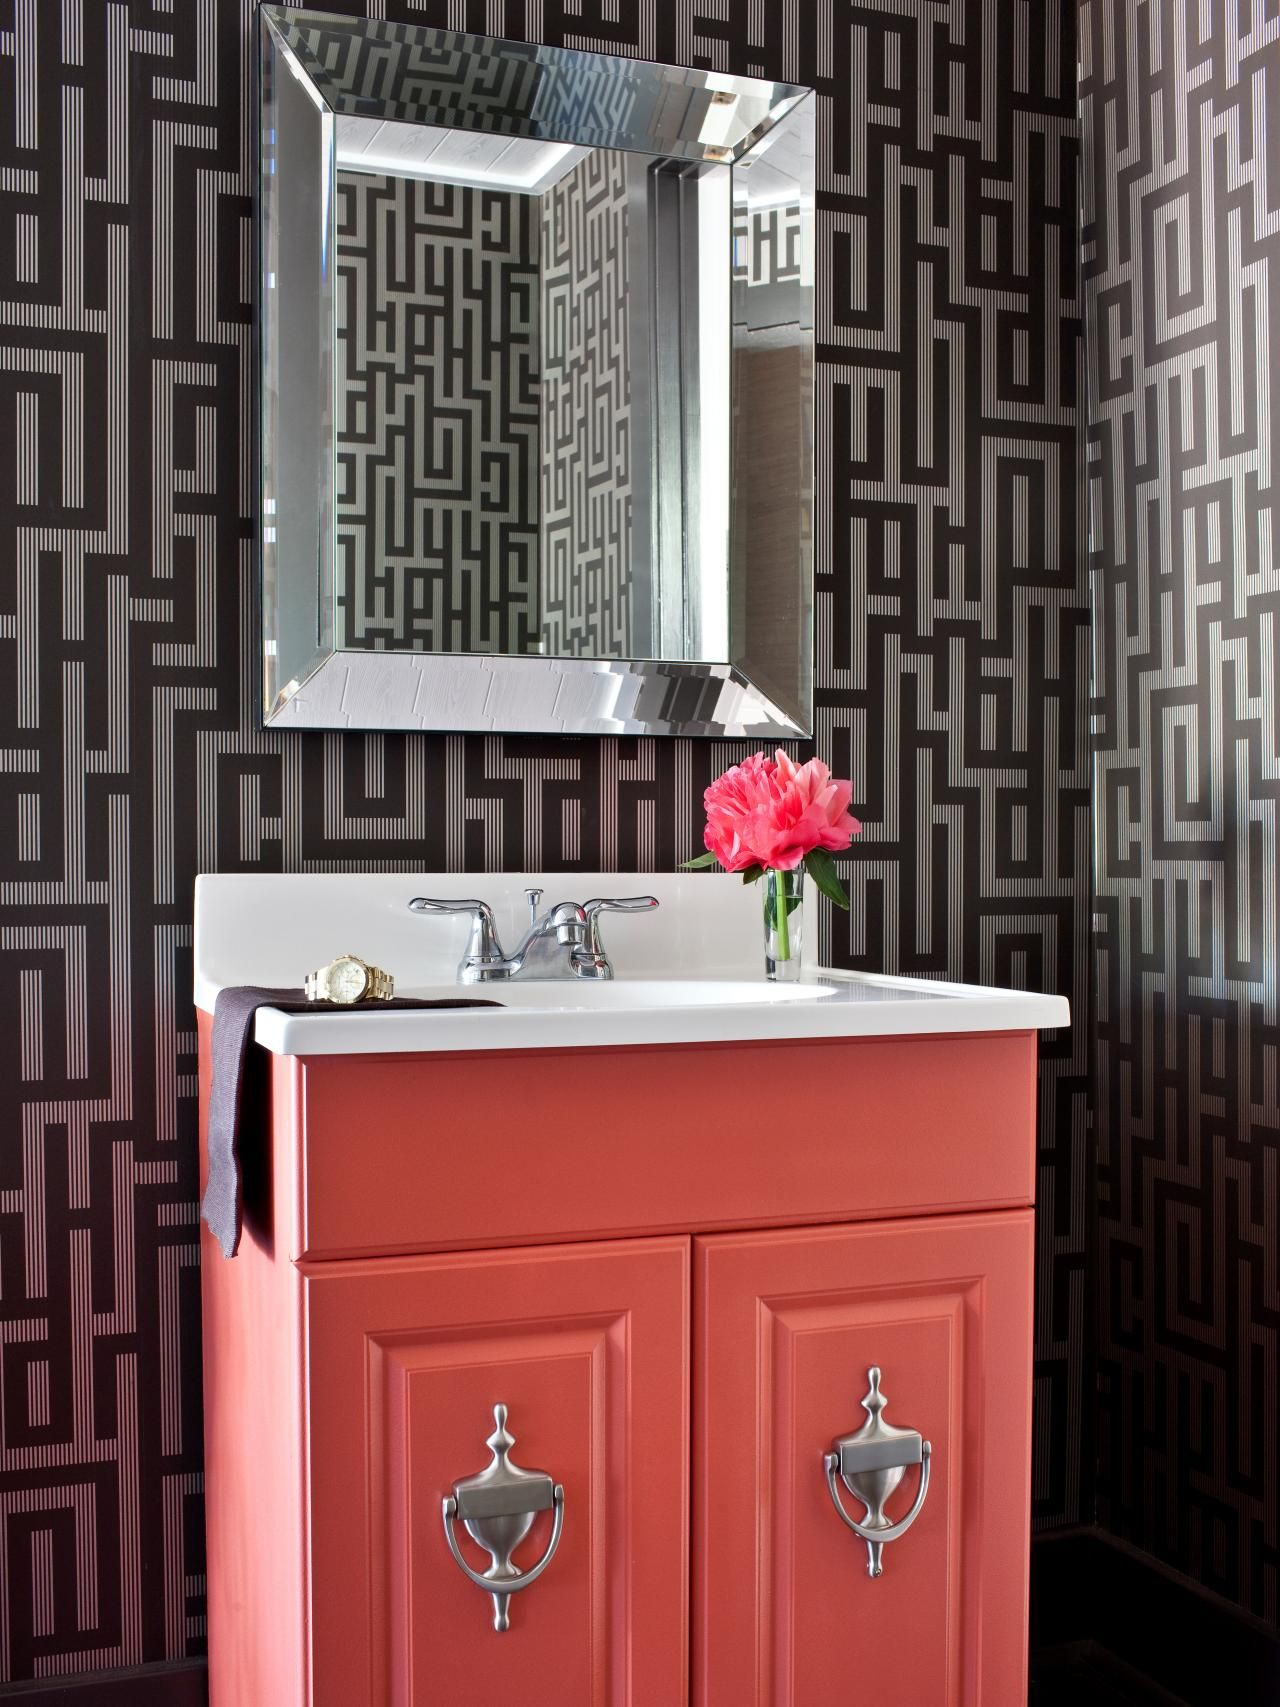 http://www.diynetwork.com/how-to/rooms-and-spaces/bathroom/17-clever-ideas-for-small-baths-pictures